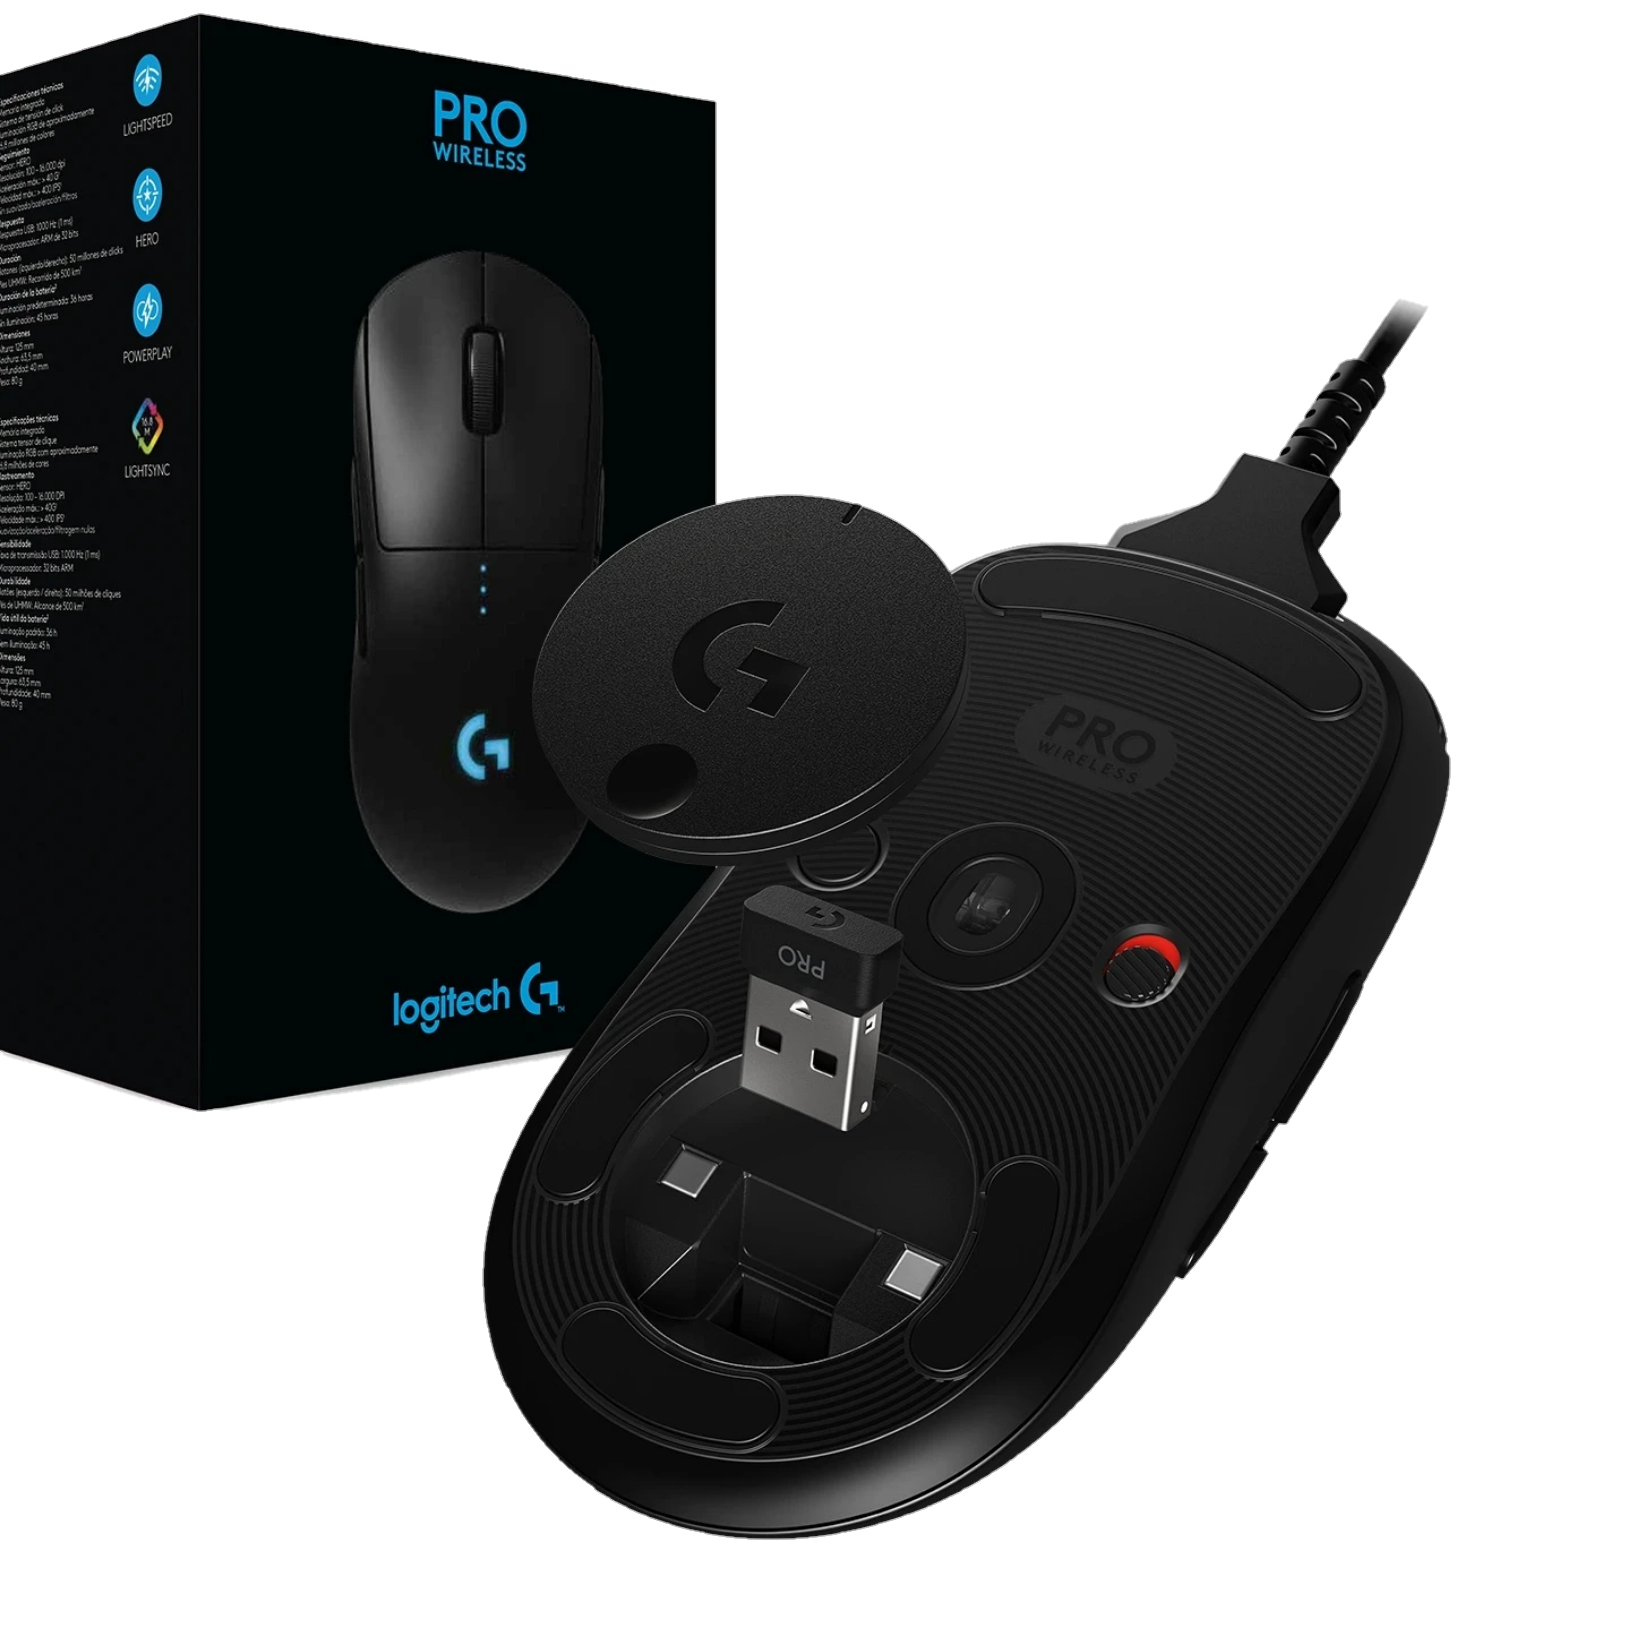 Logitech G Pro Wireless Gaming Mouse Box Contents